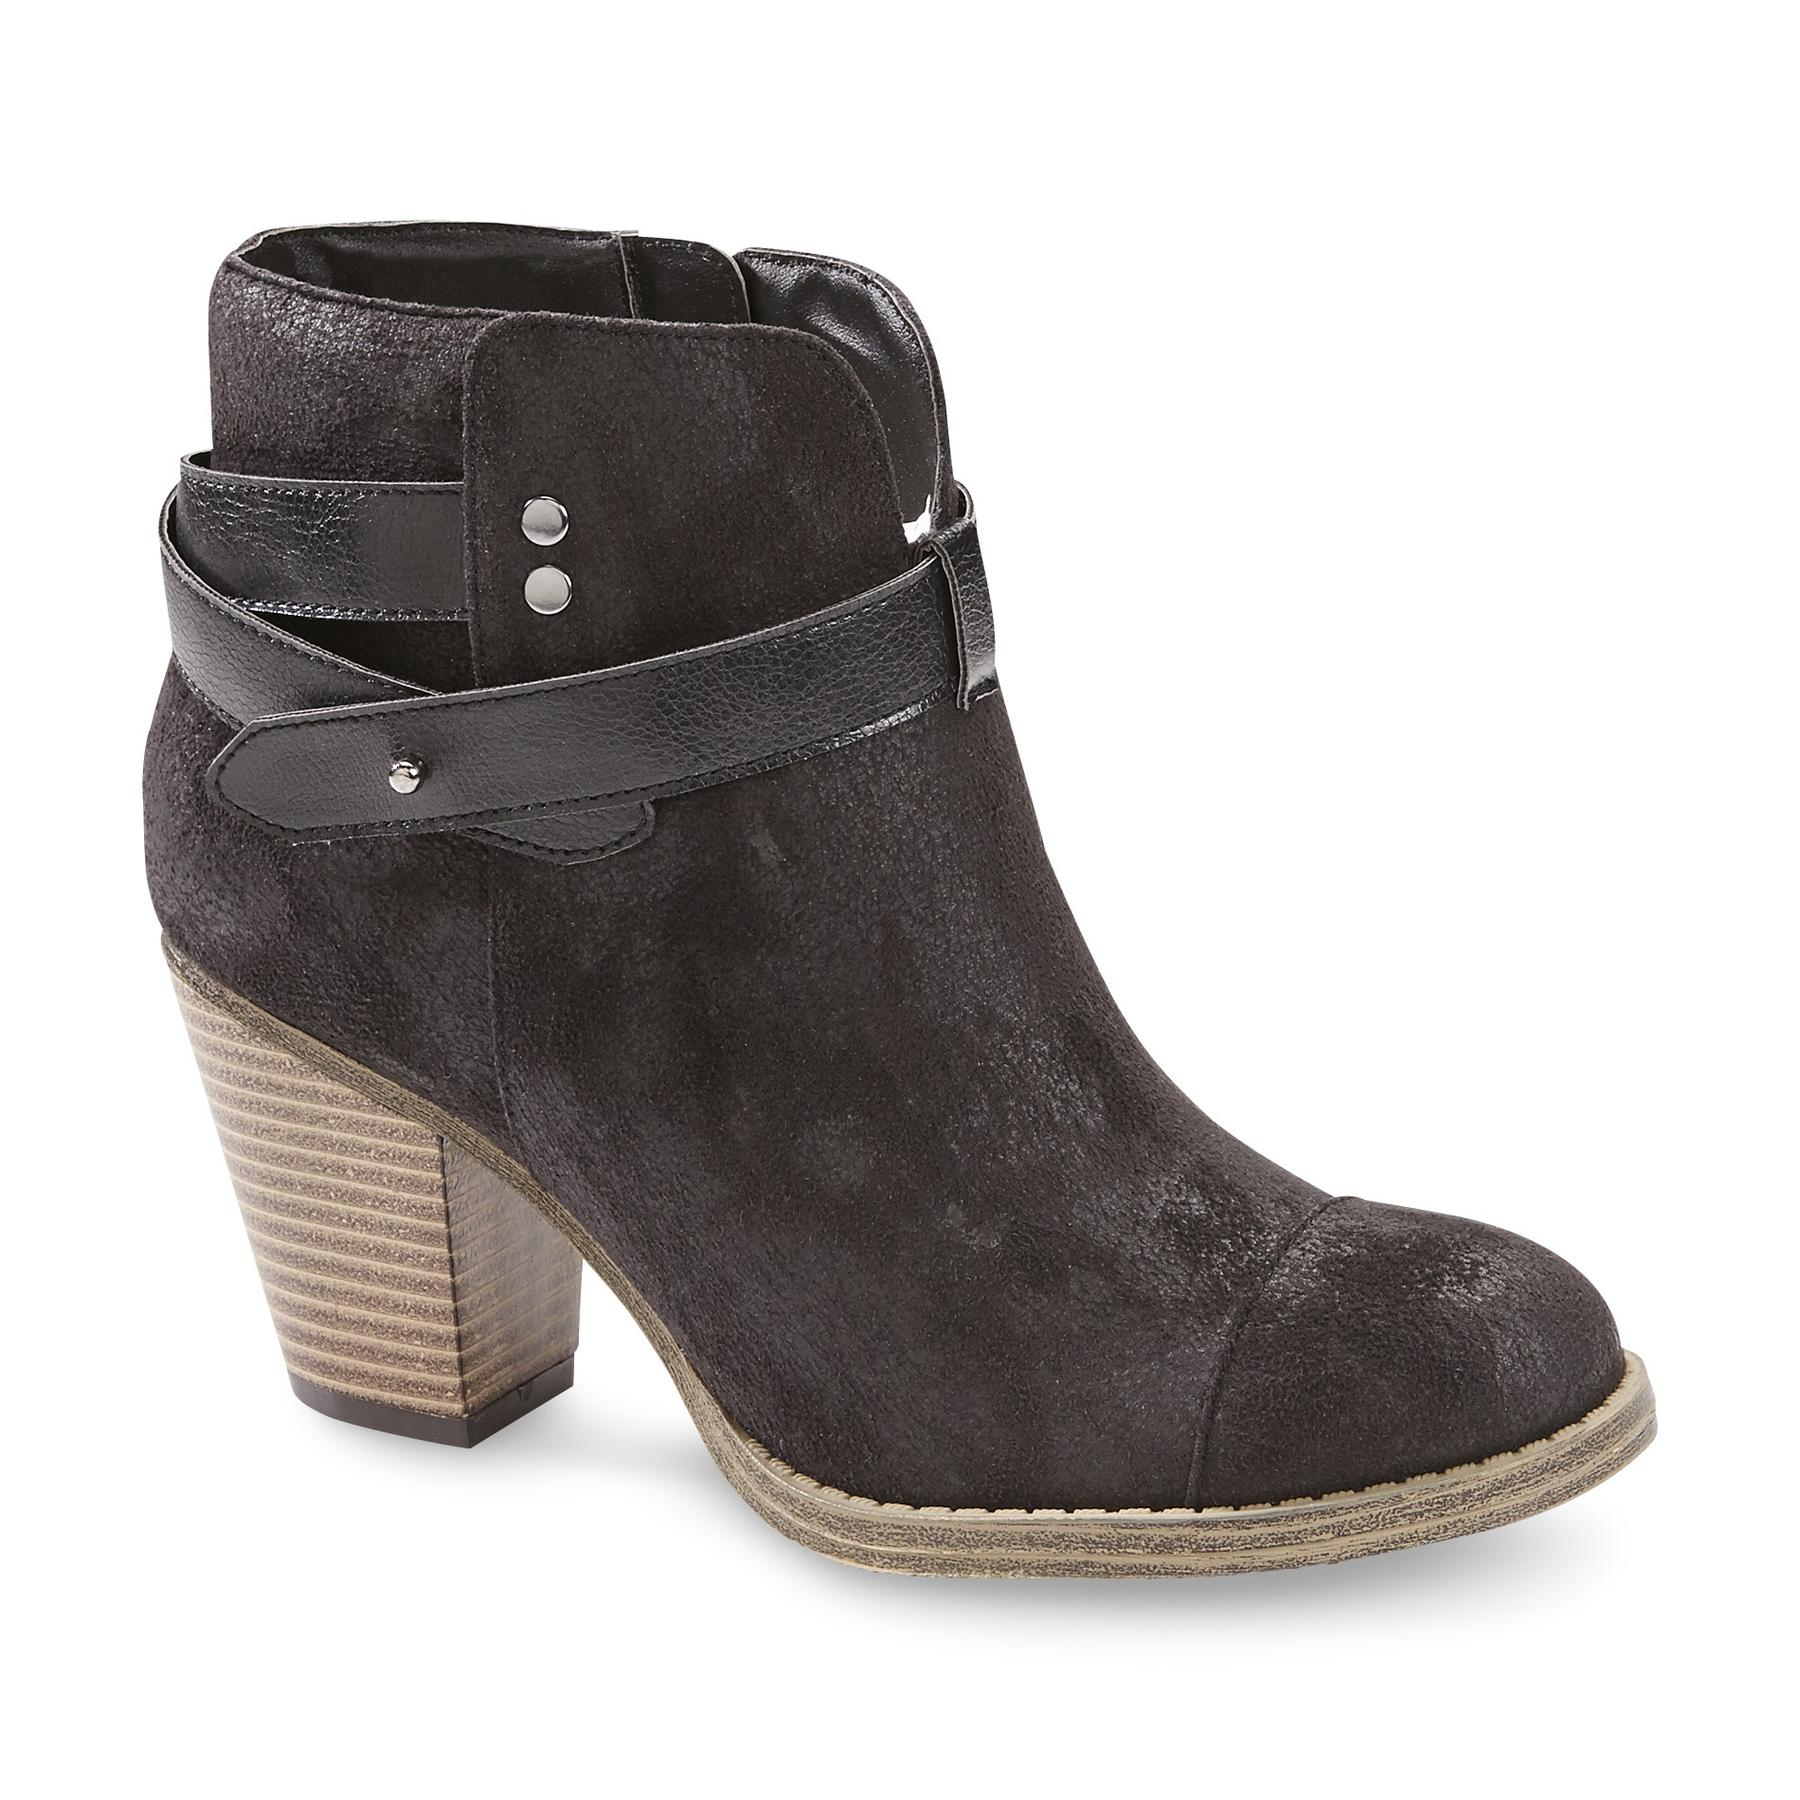 Women's Crystal Waxed Microsuede Ankle Boot - Black